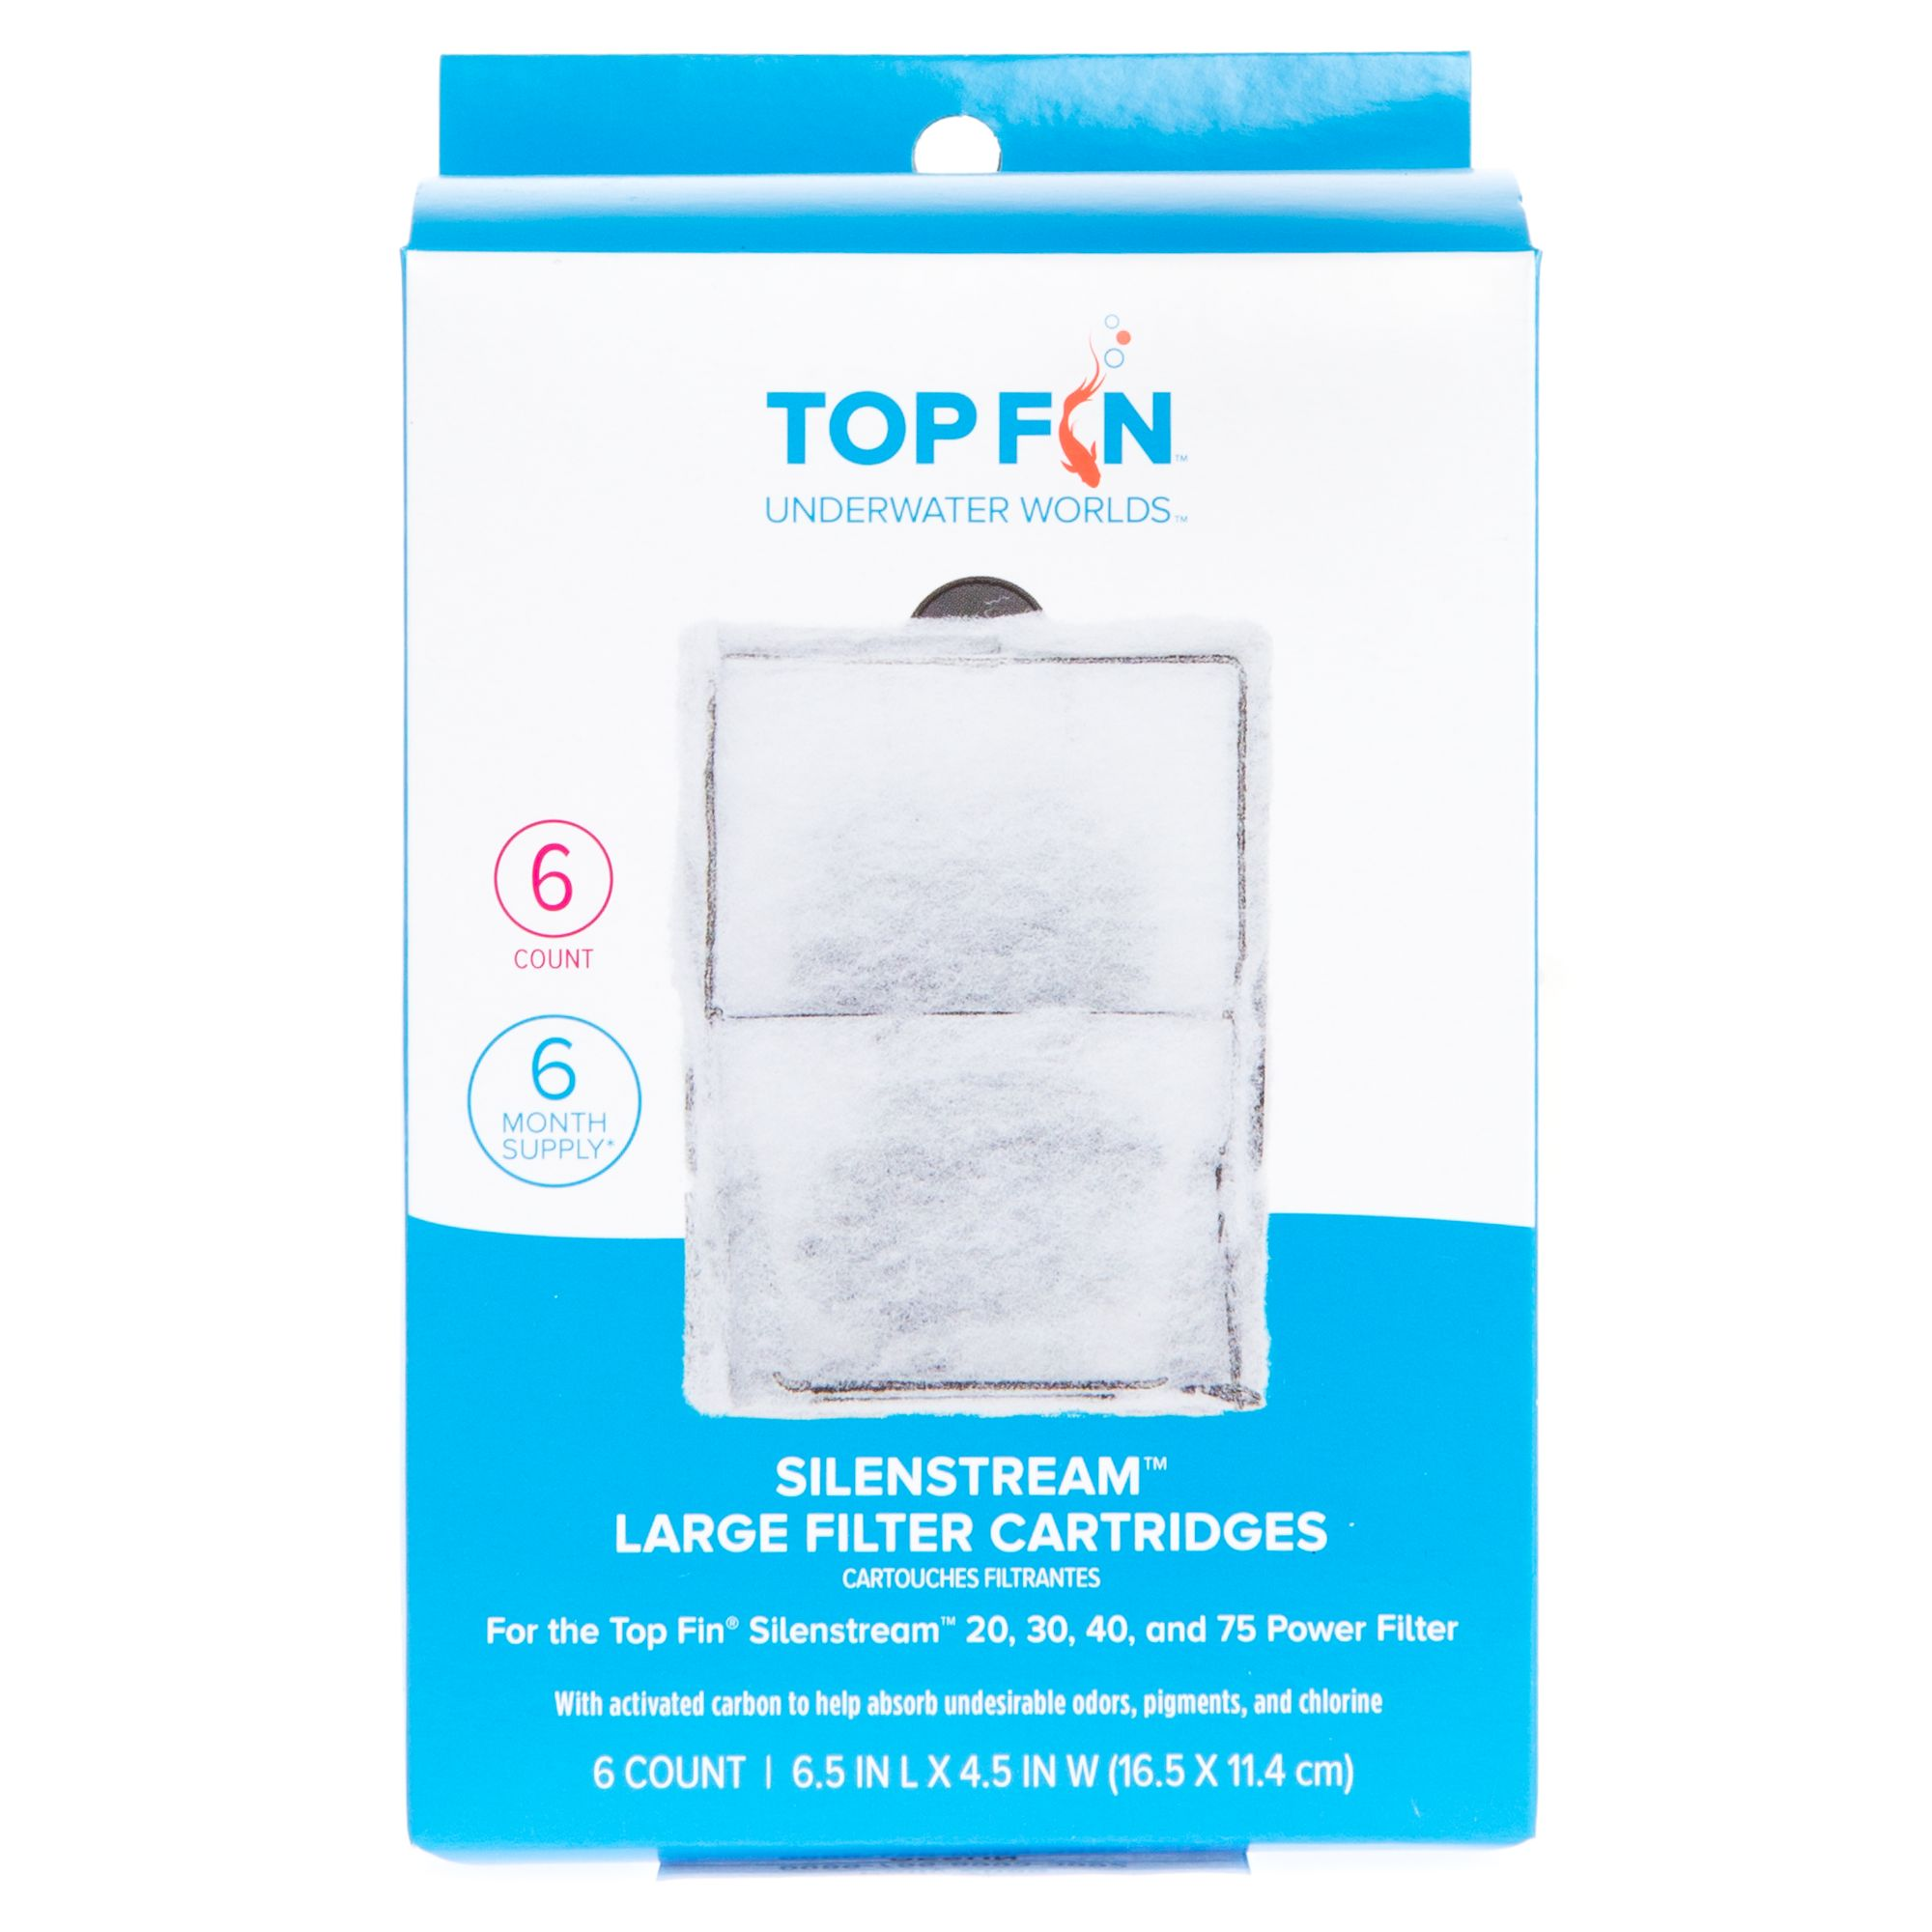 PF30 Top Fin Silenstream PF-L Refill for PF20 3 Count PF40 and PF75 Power Filters 6.5in x 4.5-